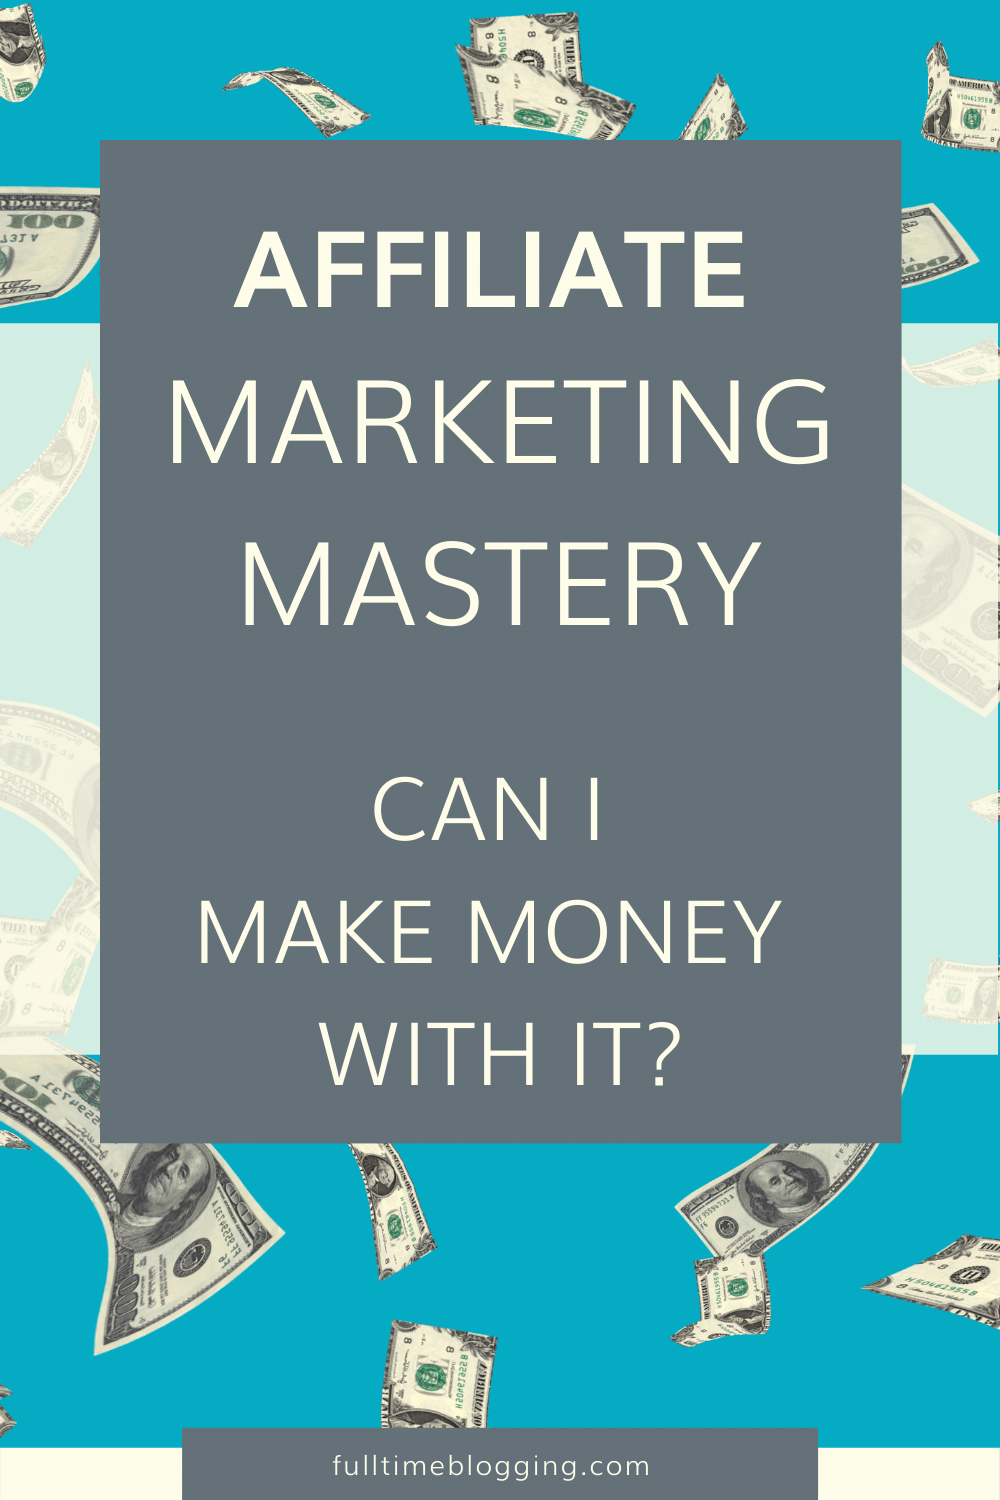 What Is The Affiliate Marketing Mastery